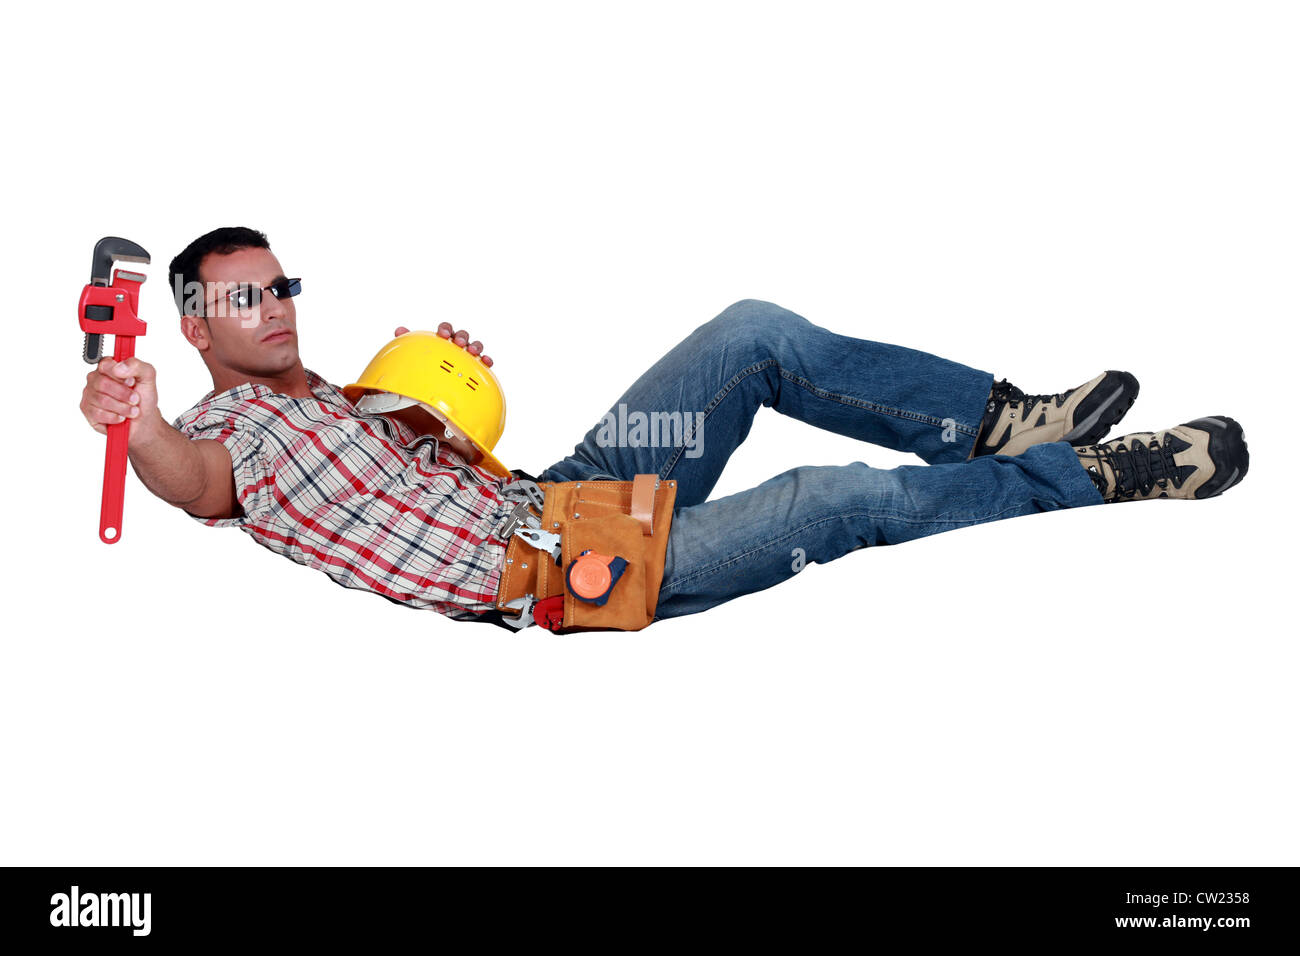 Builder taking a well earned break - Stock Image